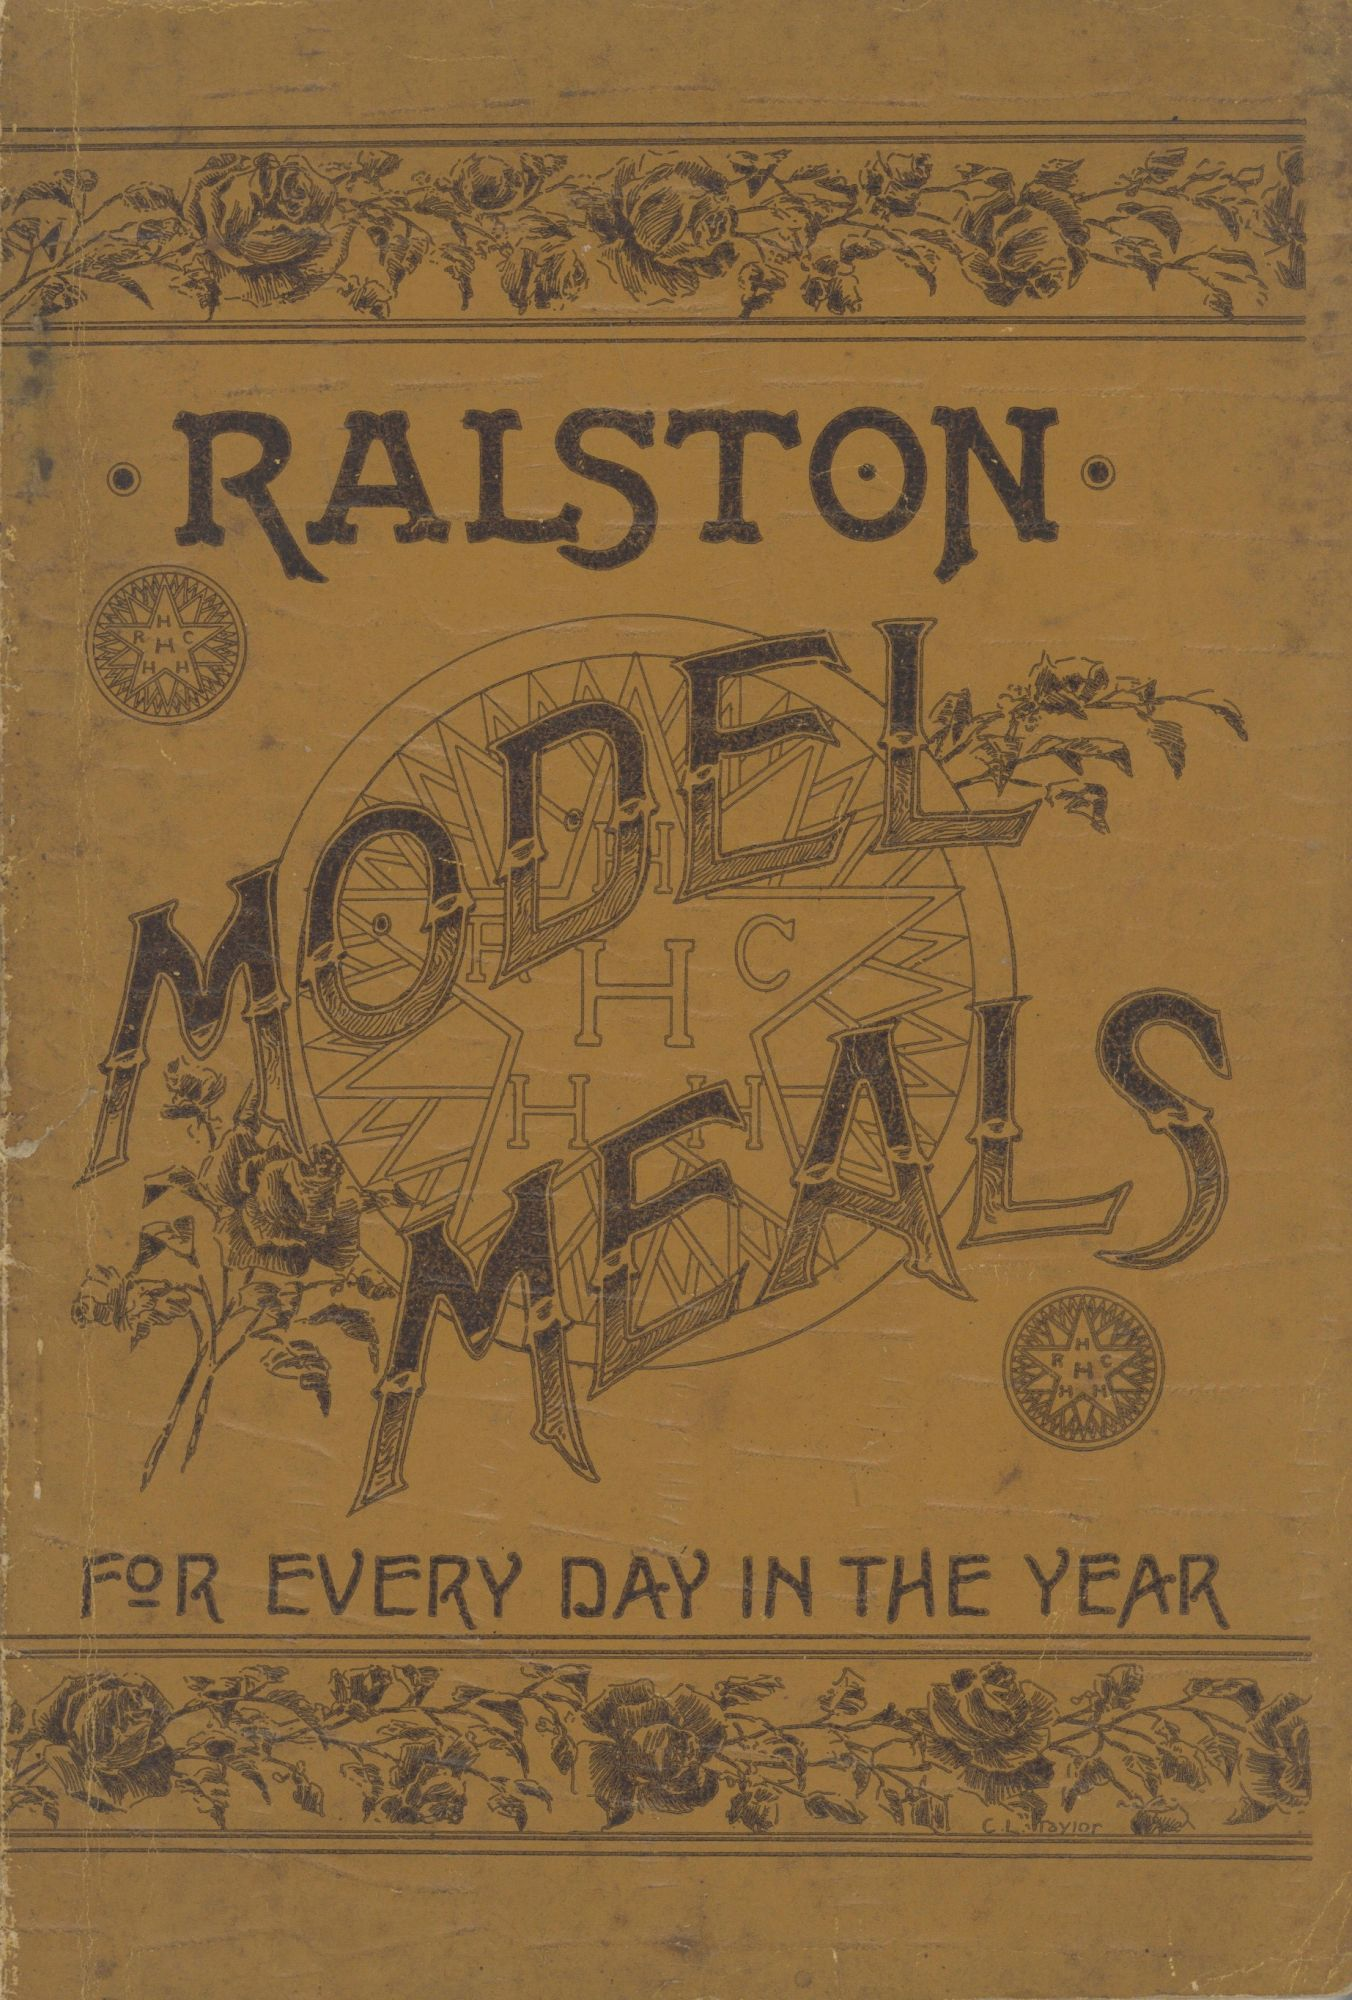 Model Meals for Every Day in the Year and How To Prepare Them: What to Eat, to Strengthen the Brain, to Make Muscle, to Establish Health. Being the third Edition of Ralston Meals, re-arranged and enlarged, with more than three times as much matter as appeared in the second edition. [Compiled by the Ralston Health Club.]. Ralston Company, D. C. Washington, Ralston Health Club, Webster Edgerly.